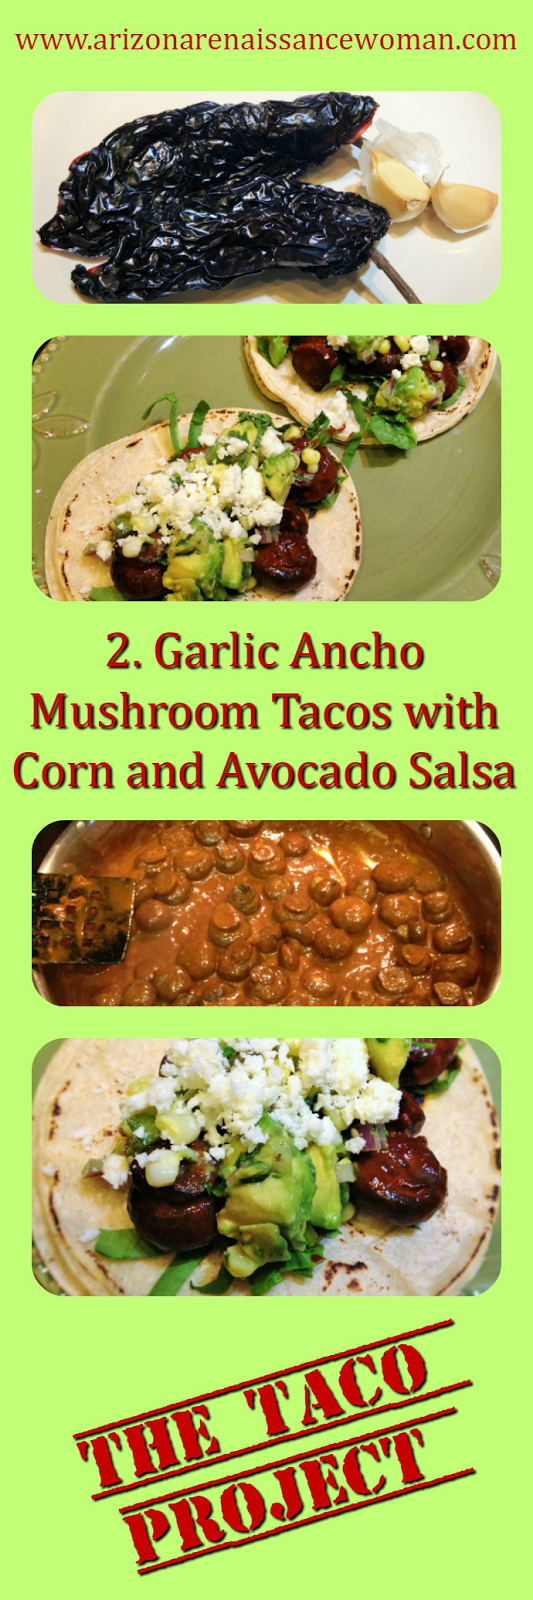 Garlic Ancho Mushroom Tacos with Corn and Avocado Salsa Collage